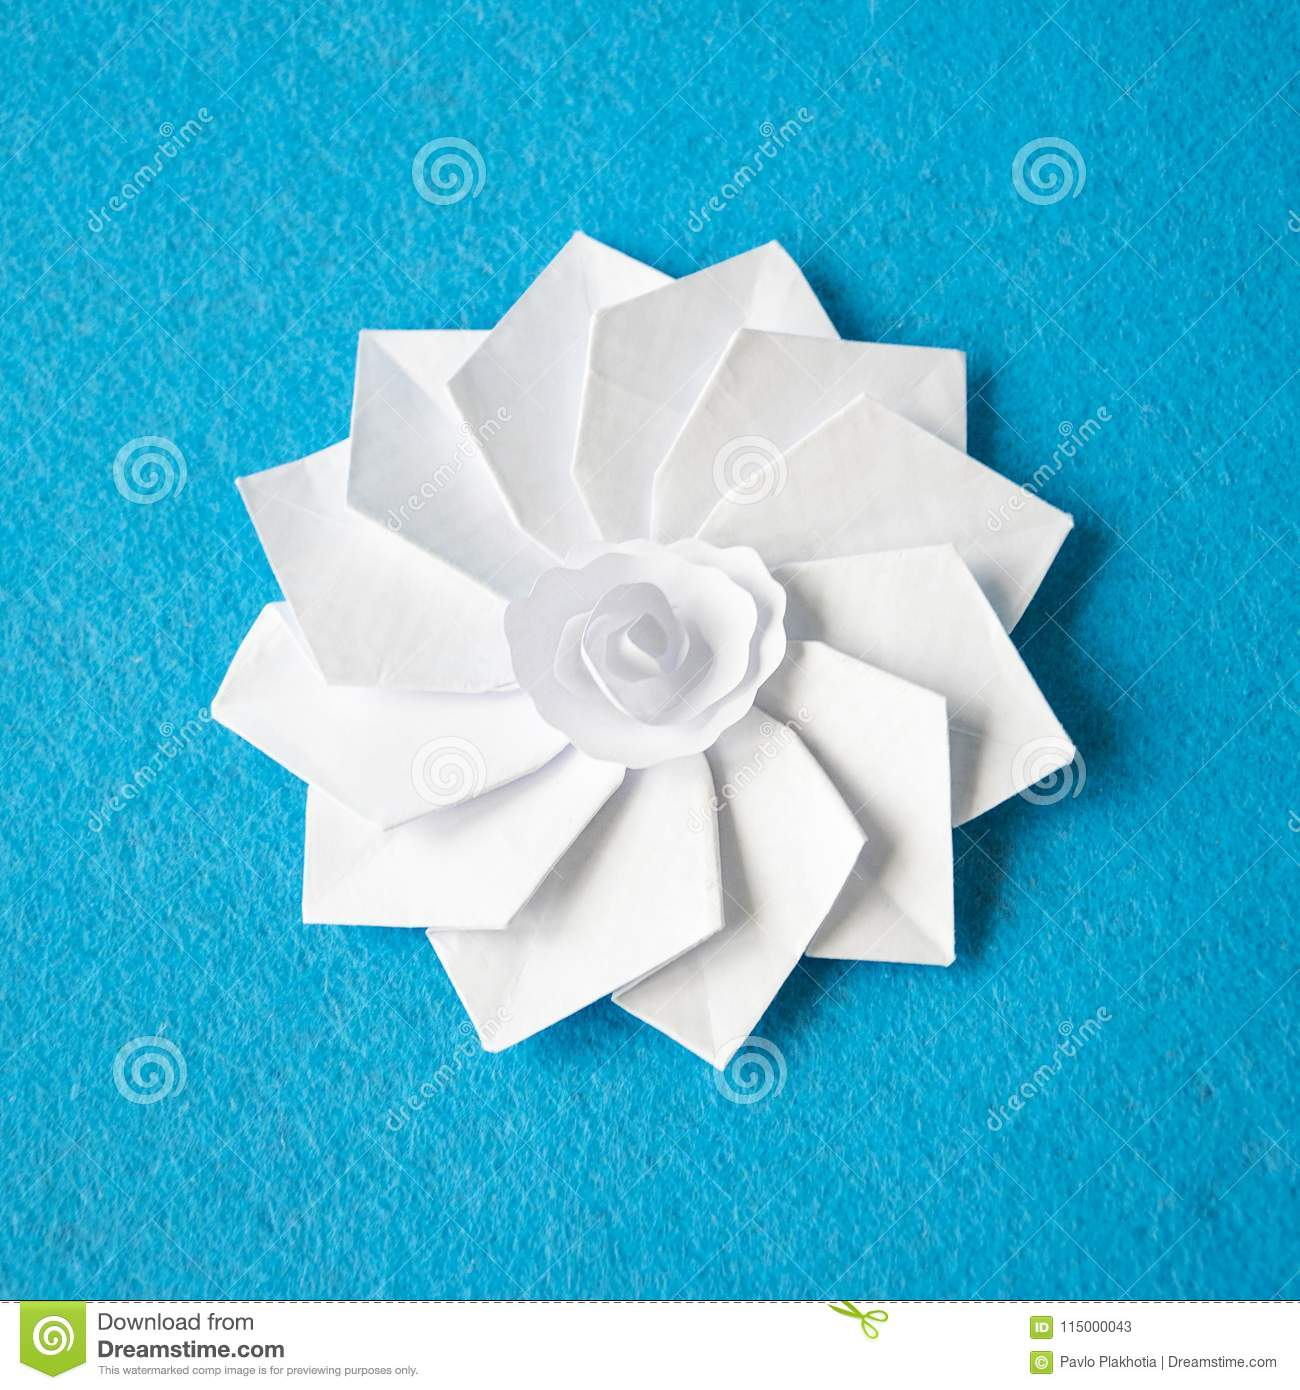 Handmade Origami White Paper Flower Stock Image Image Of Beautiful